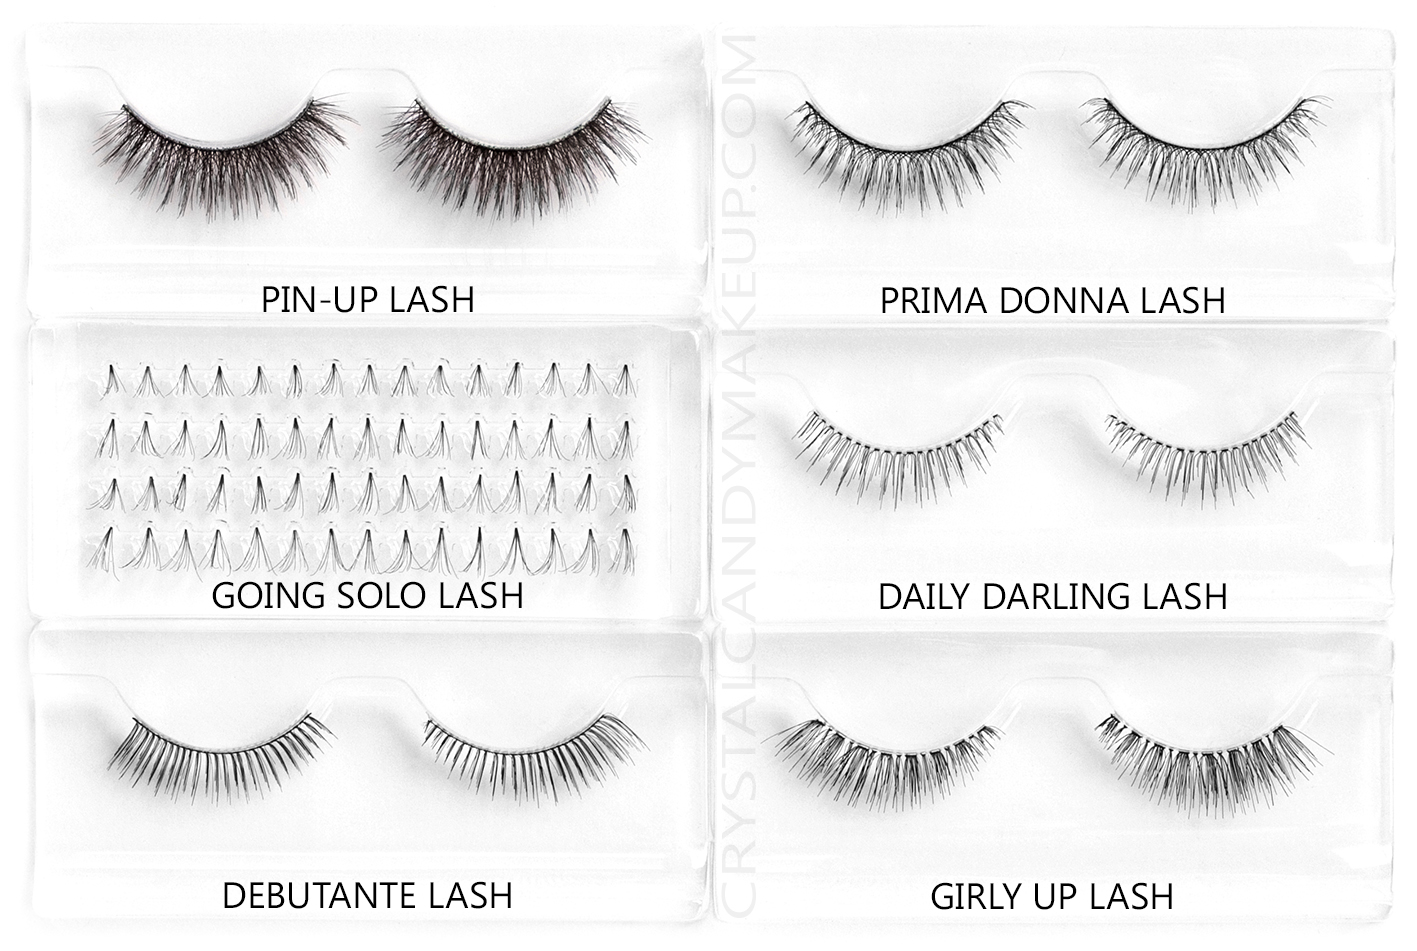 Benefit Real False Lashes Review Pin-Up Going Solo Debutante Prima Donna Daily Darling Girly